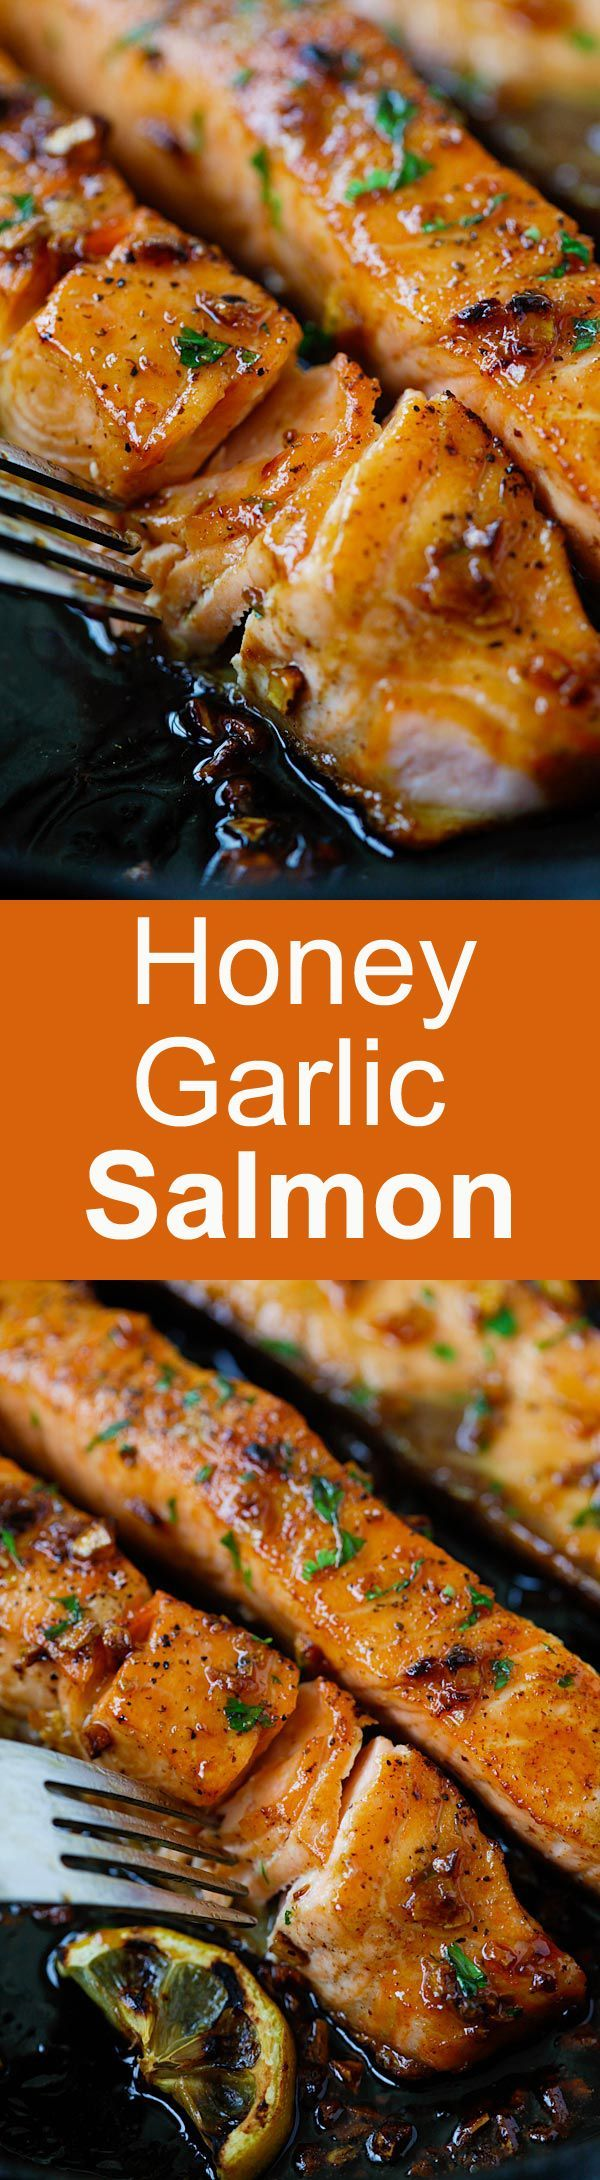 Honey Garlic Salmon – garlicky, sweet and sticky salmon with simple ingredients. Takes 20 mins, so good and great for tonight's dinner